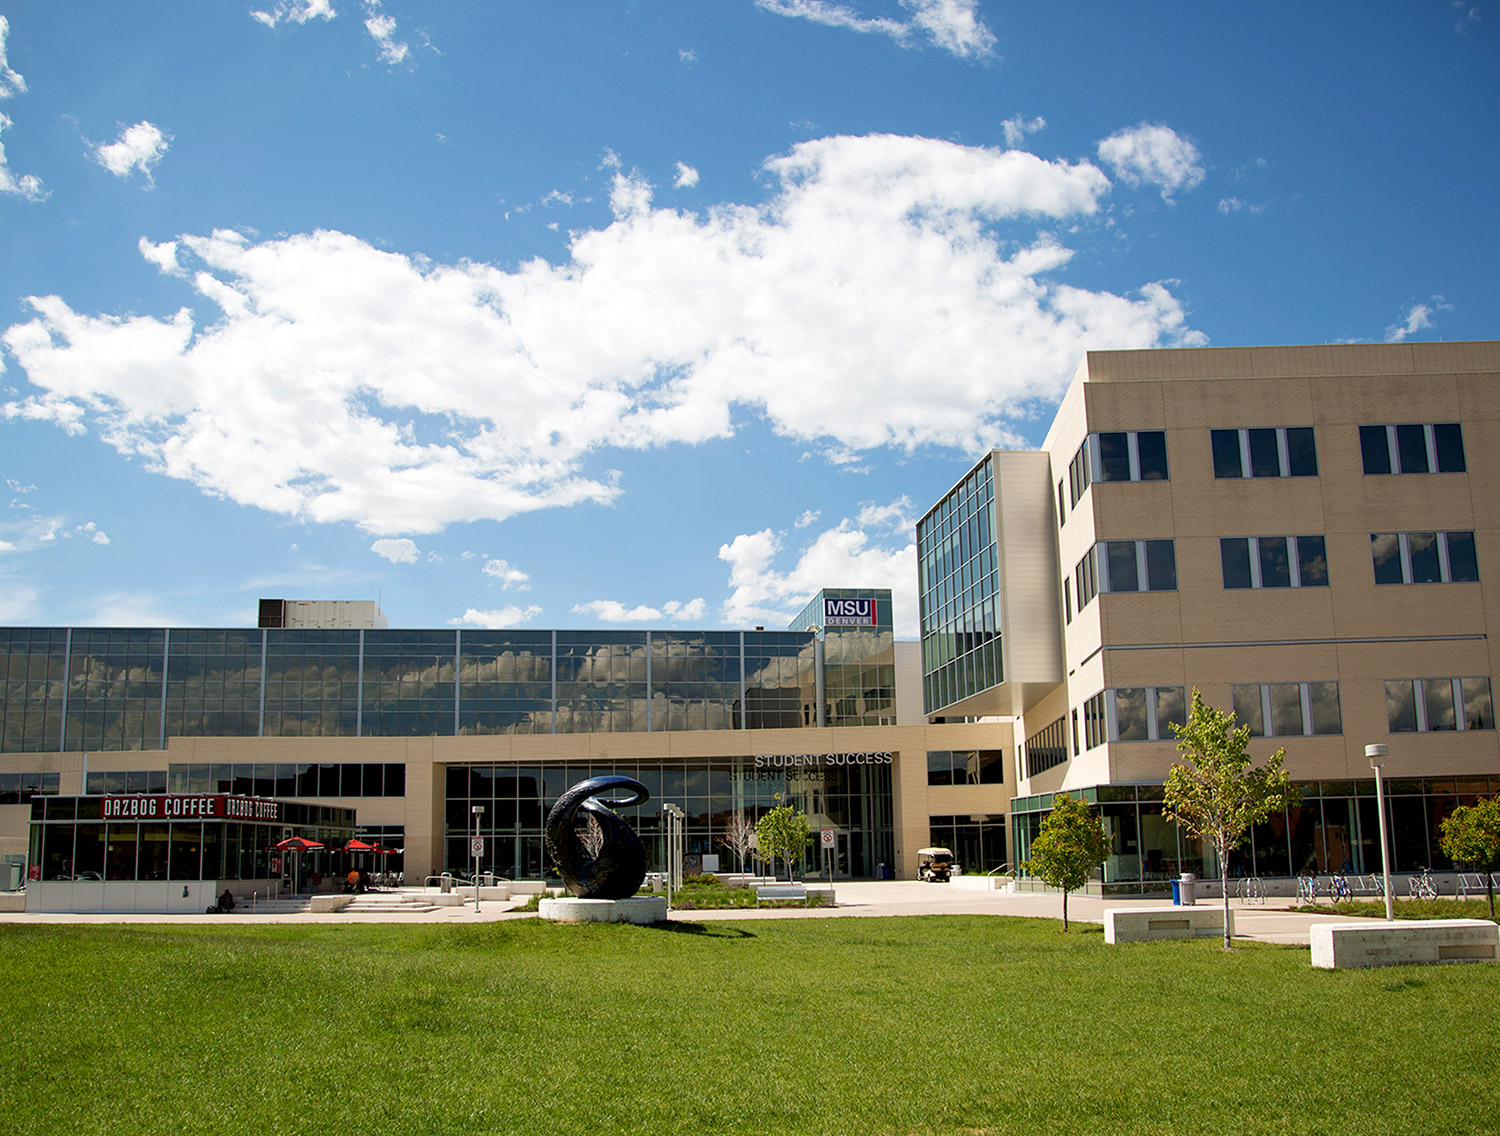 Photo of the Student Success Building on the Auraria Campus.